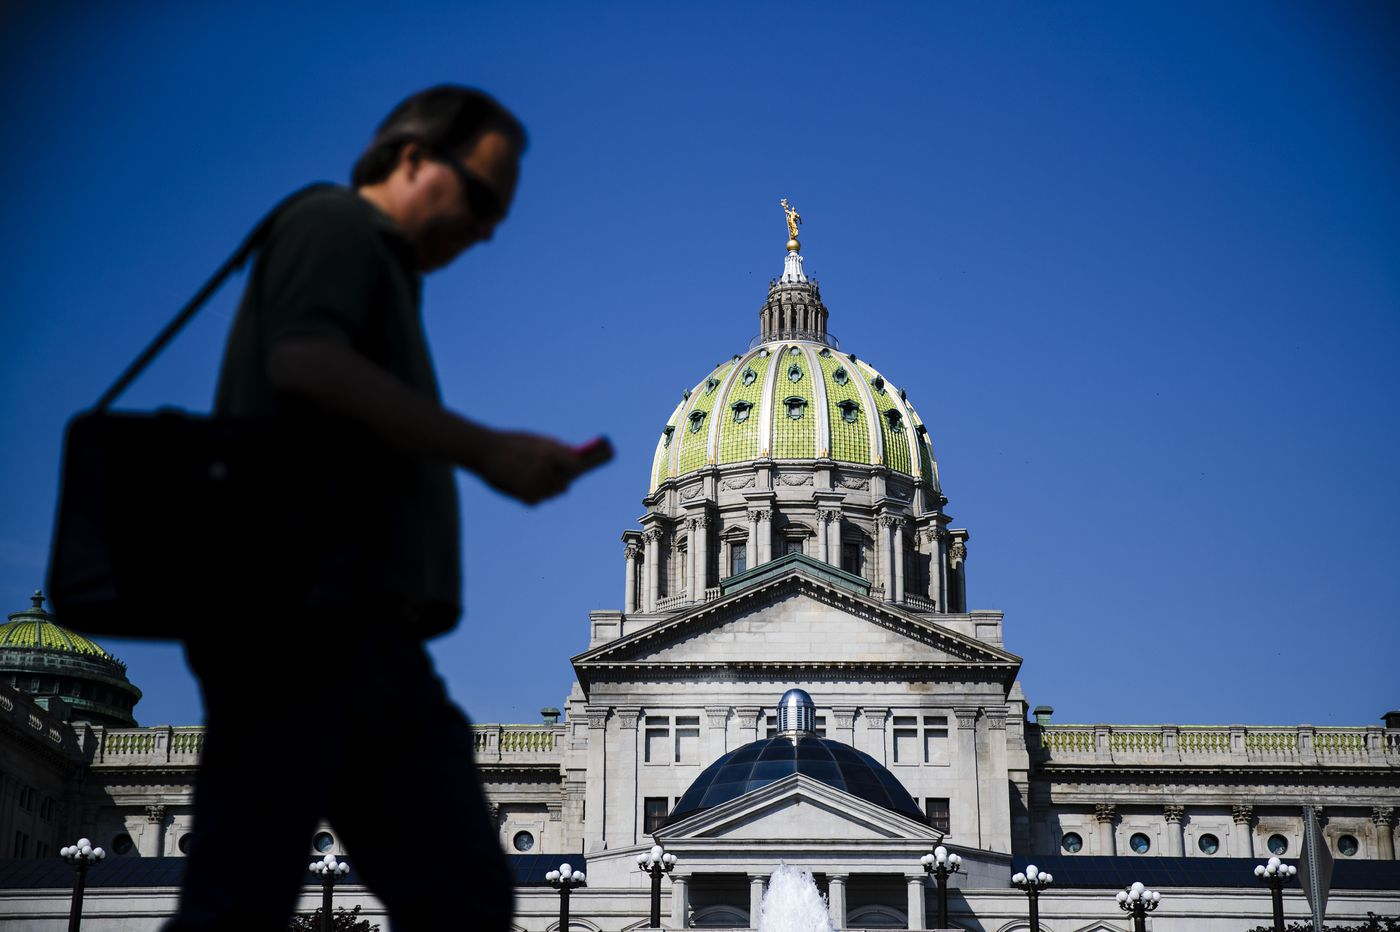 Pa. got $1B more in taxes than expected. Officials say federal tax changes, online sales taxes made that happen.